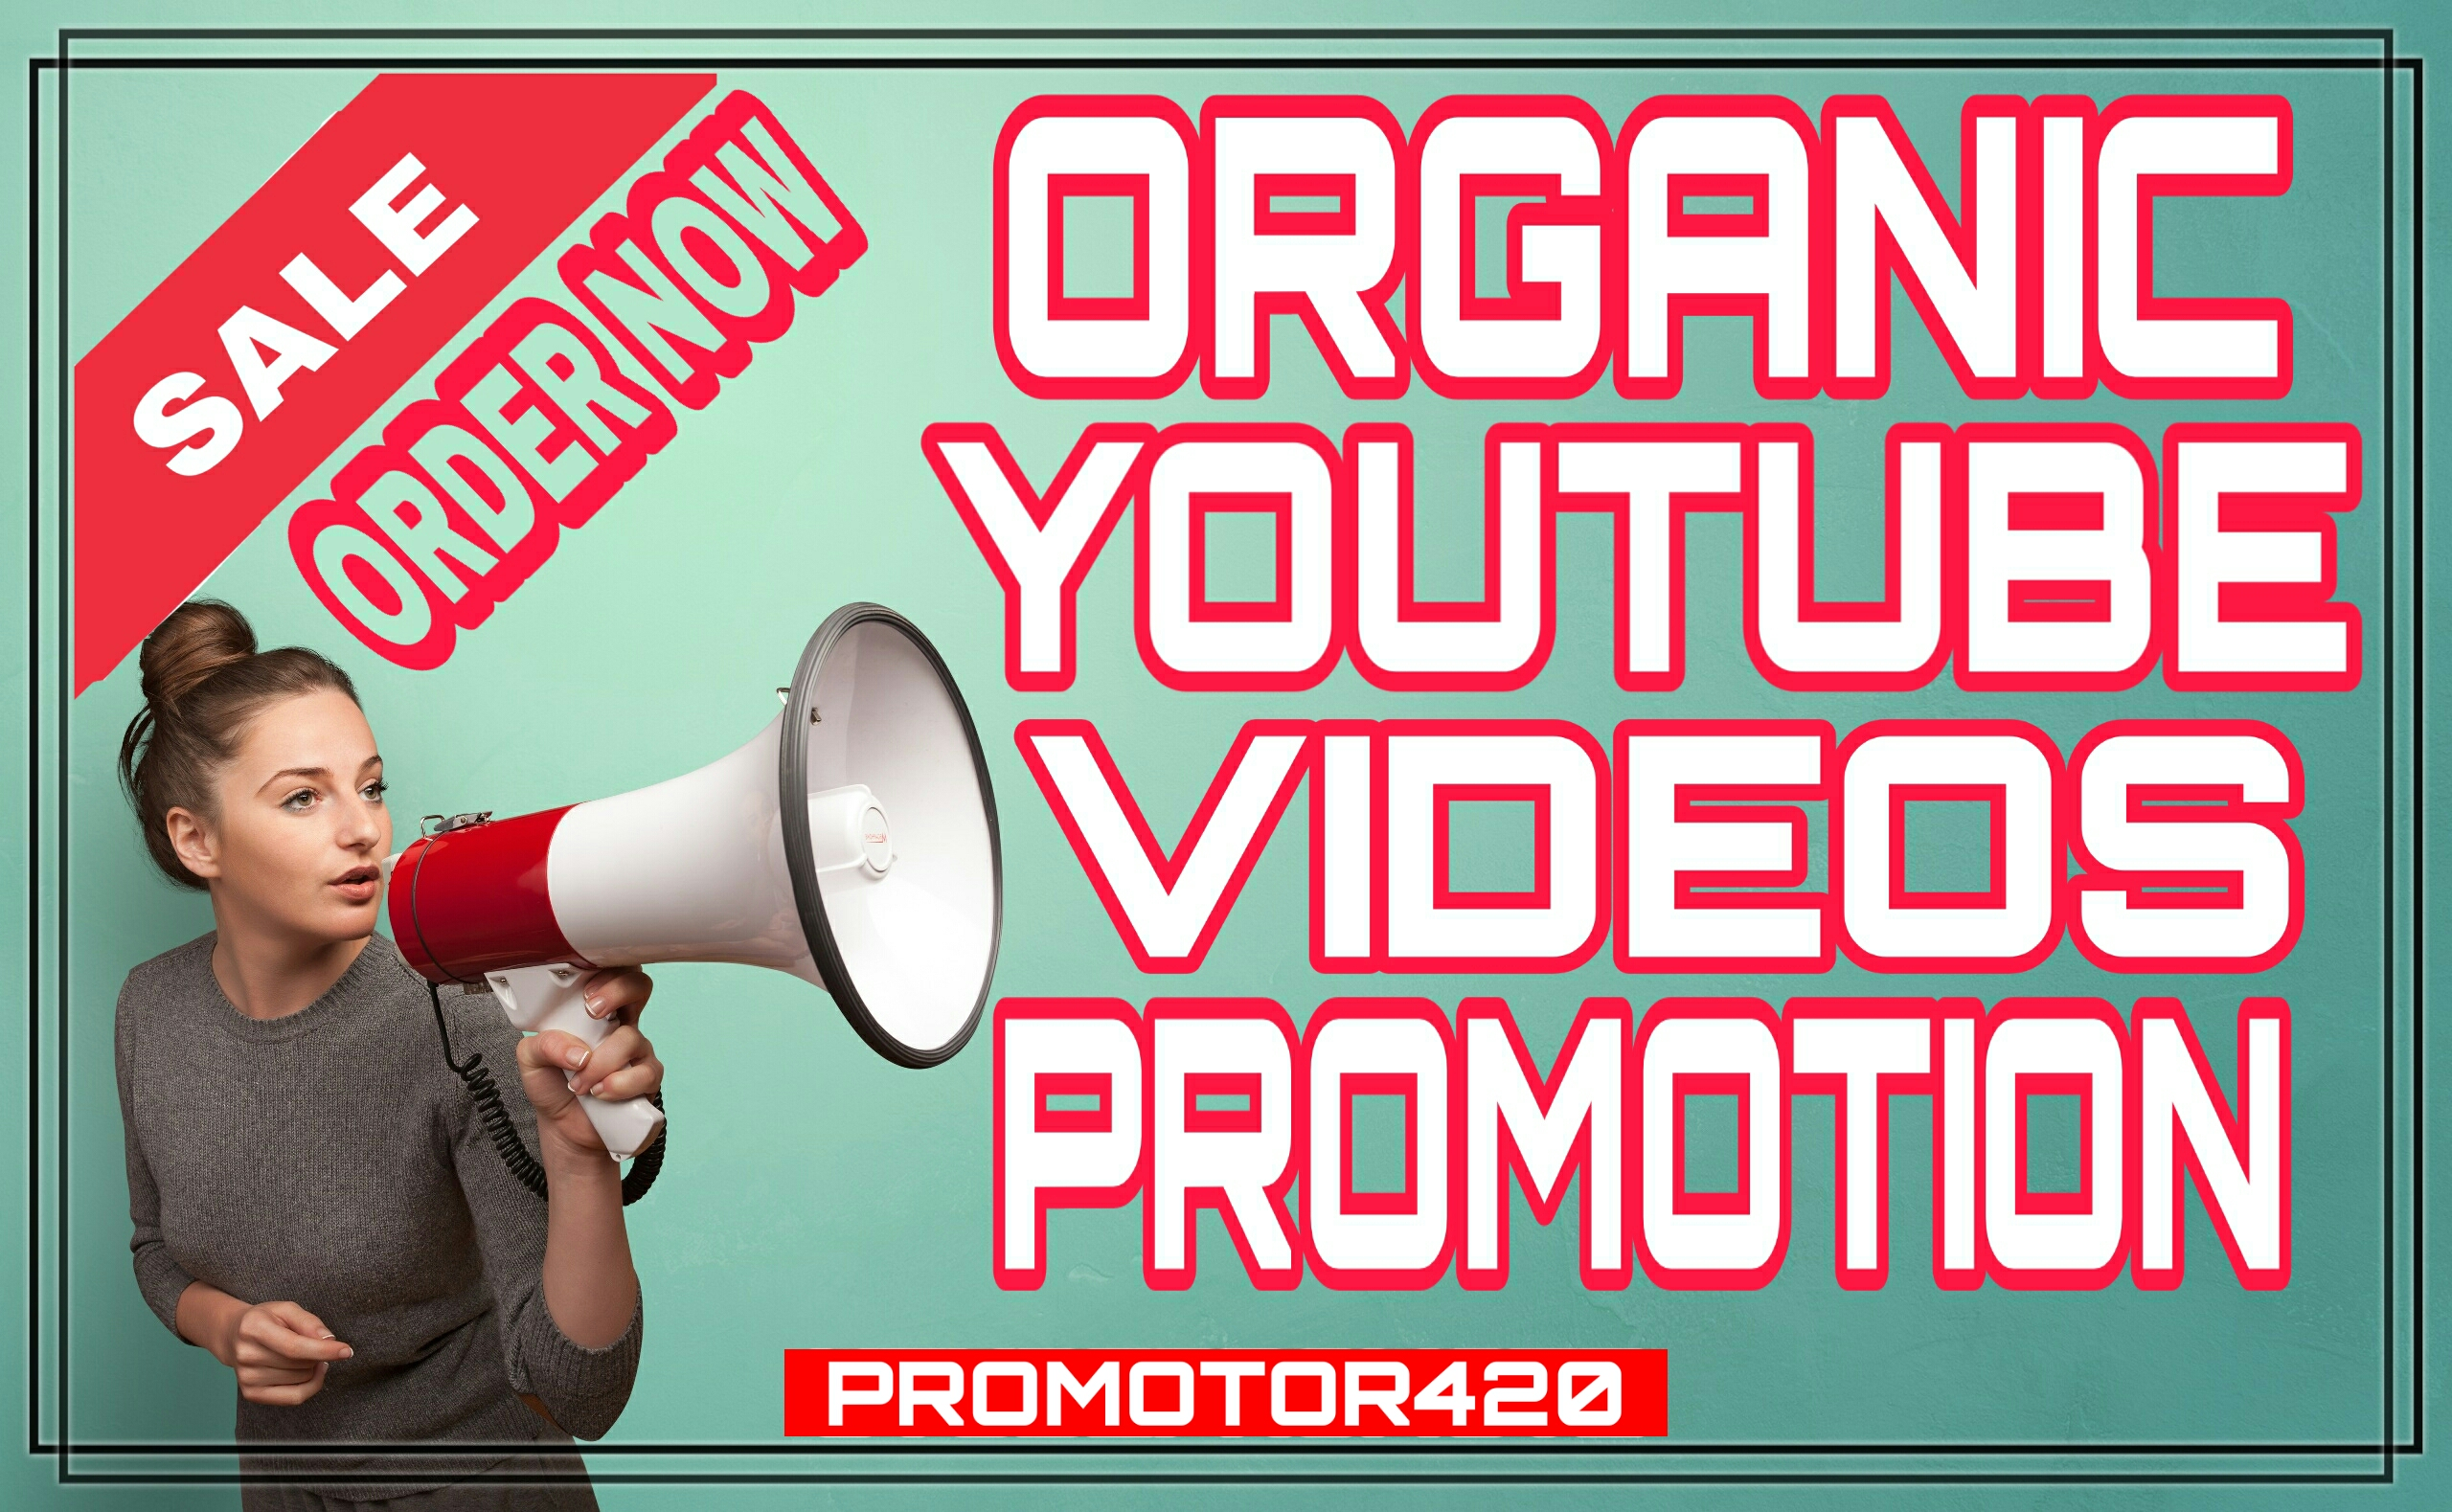 HQ youtube videos promotion & marketing